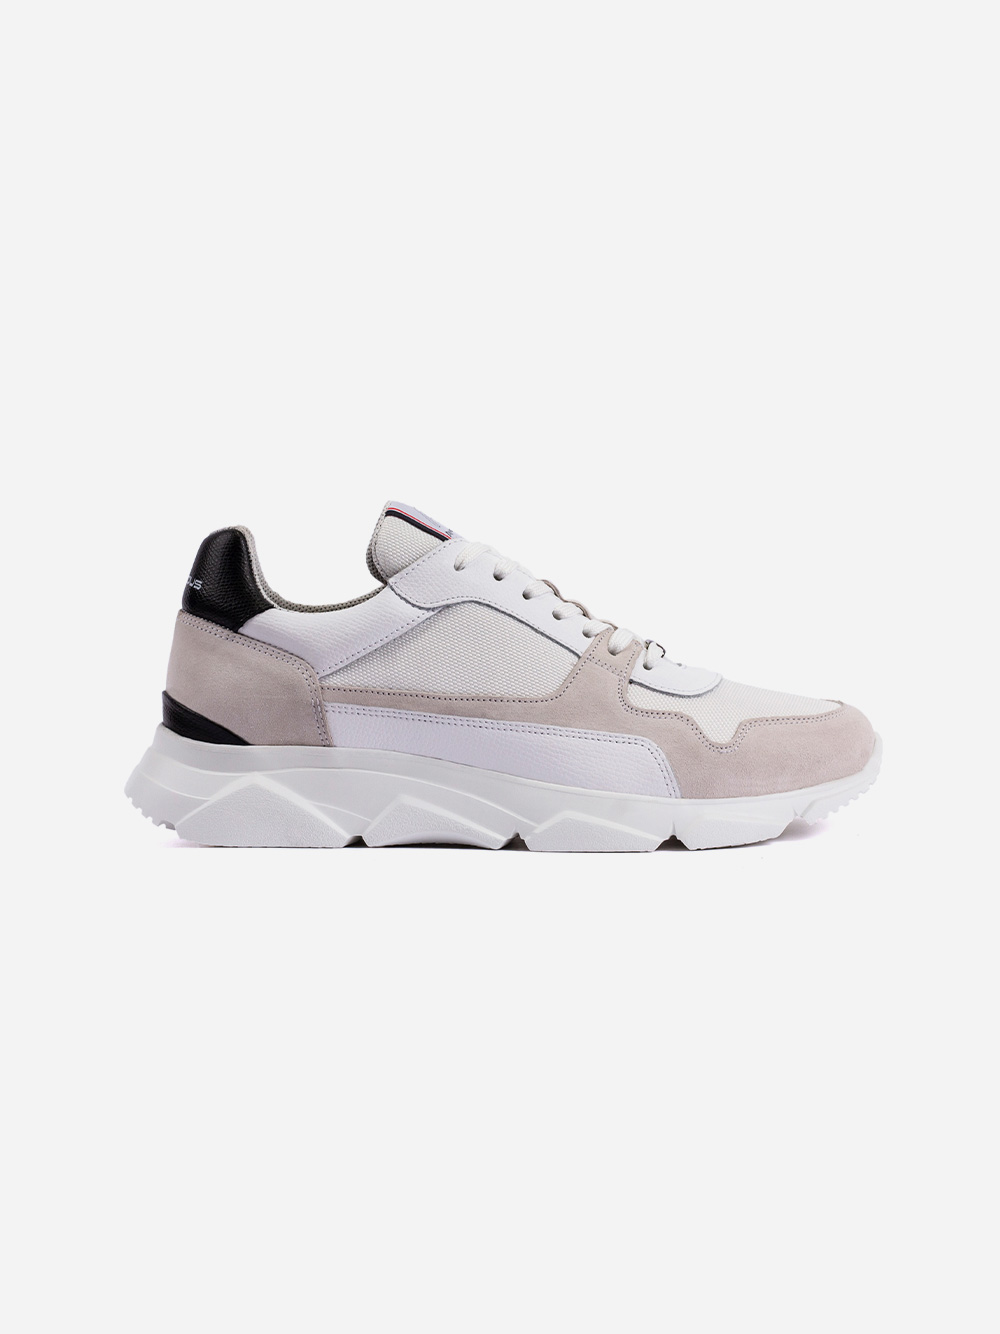 White and grey Sneakers